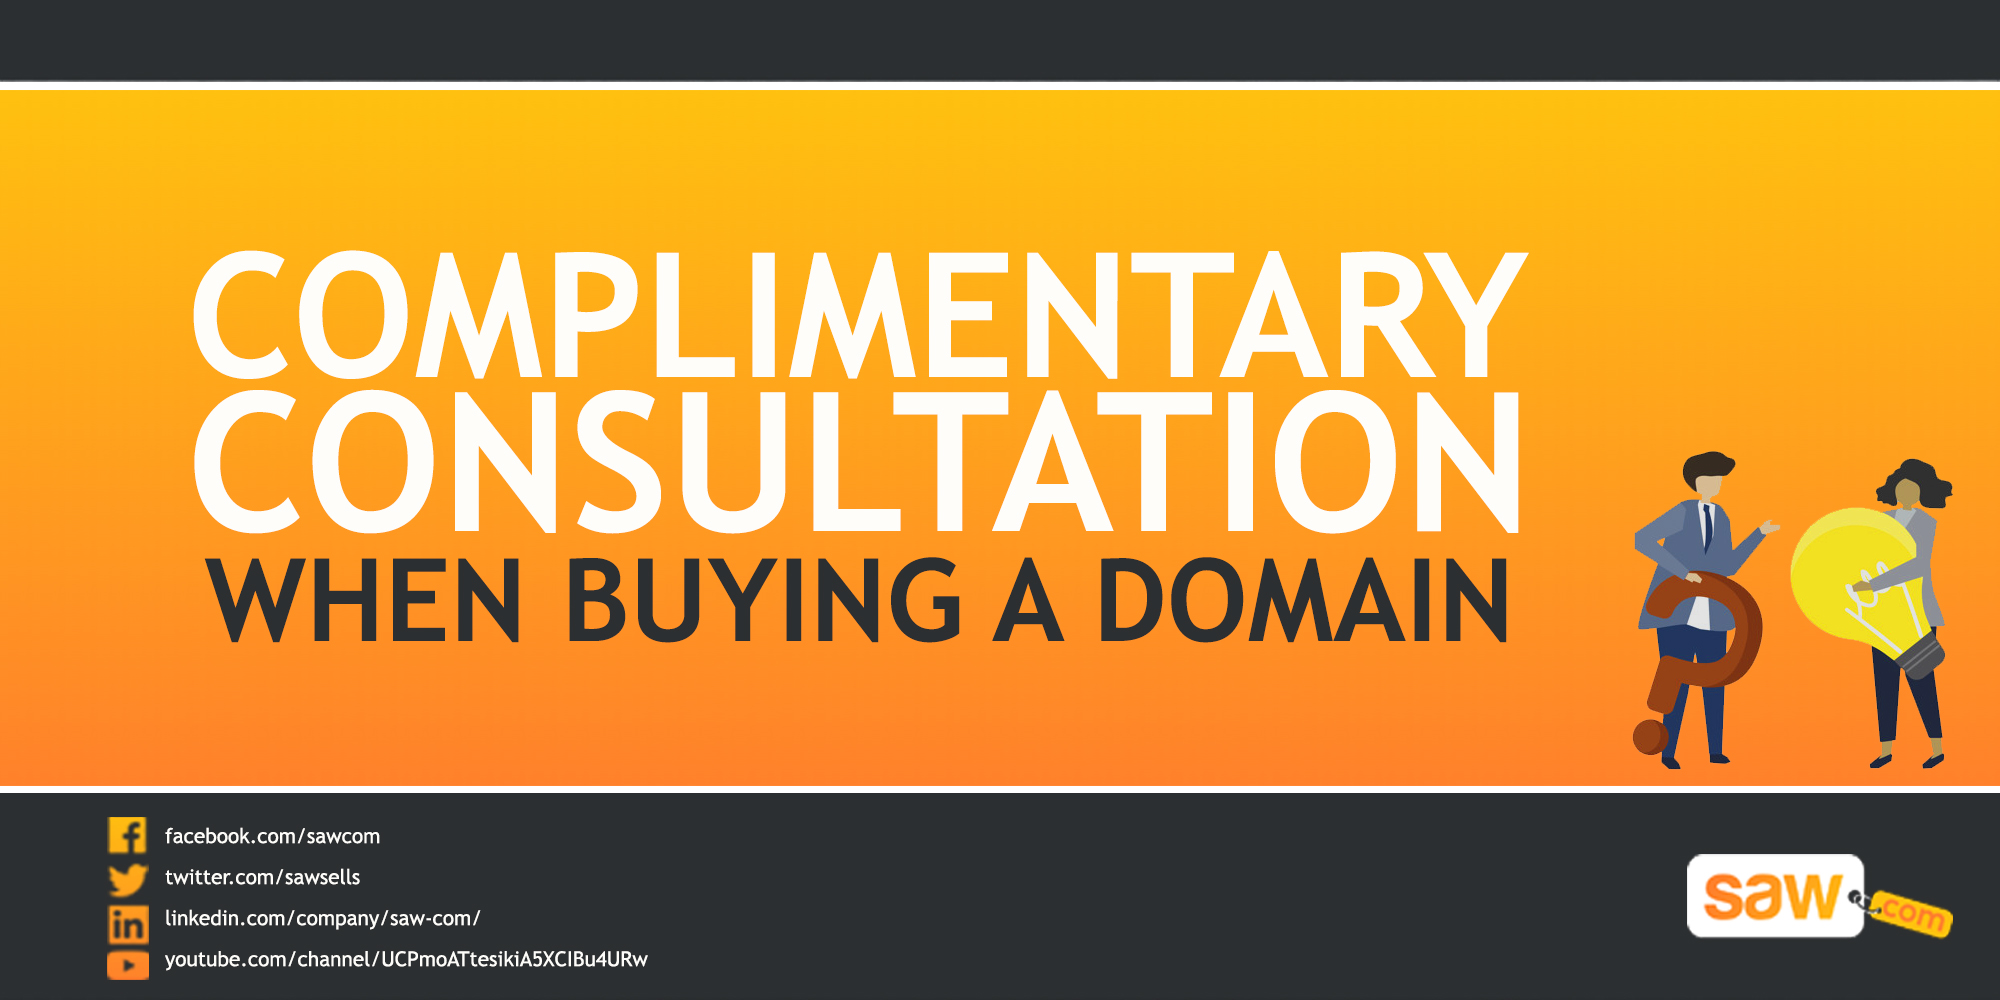 Do not just go buy a domain! Get a Complimentary Consultation from Saw.com